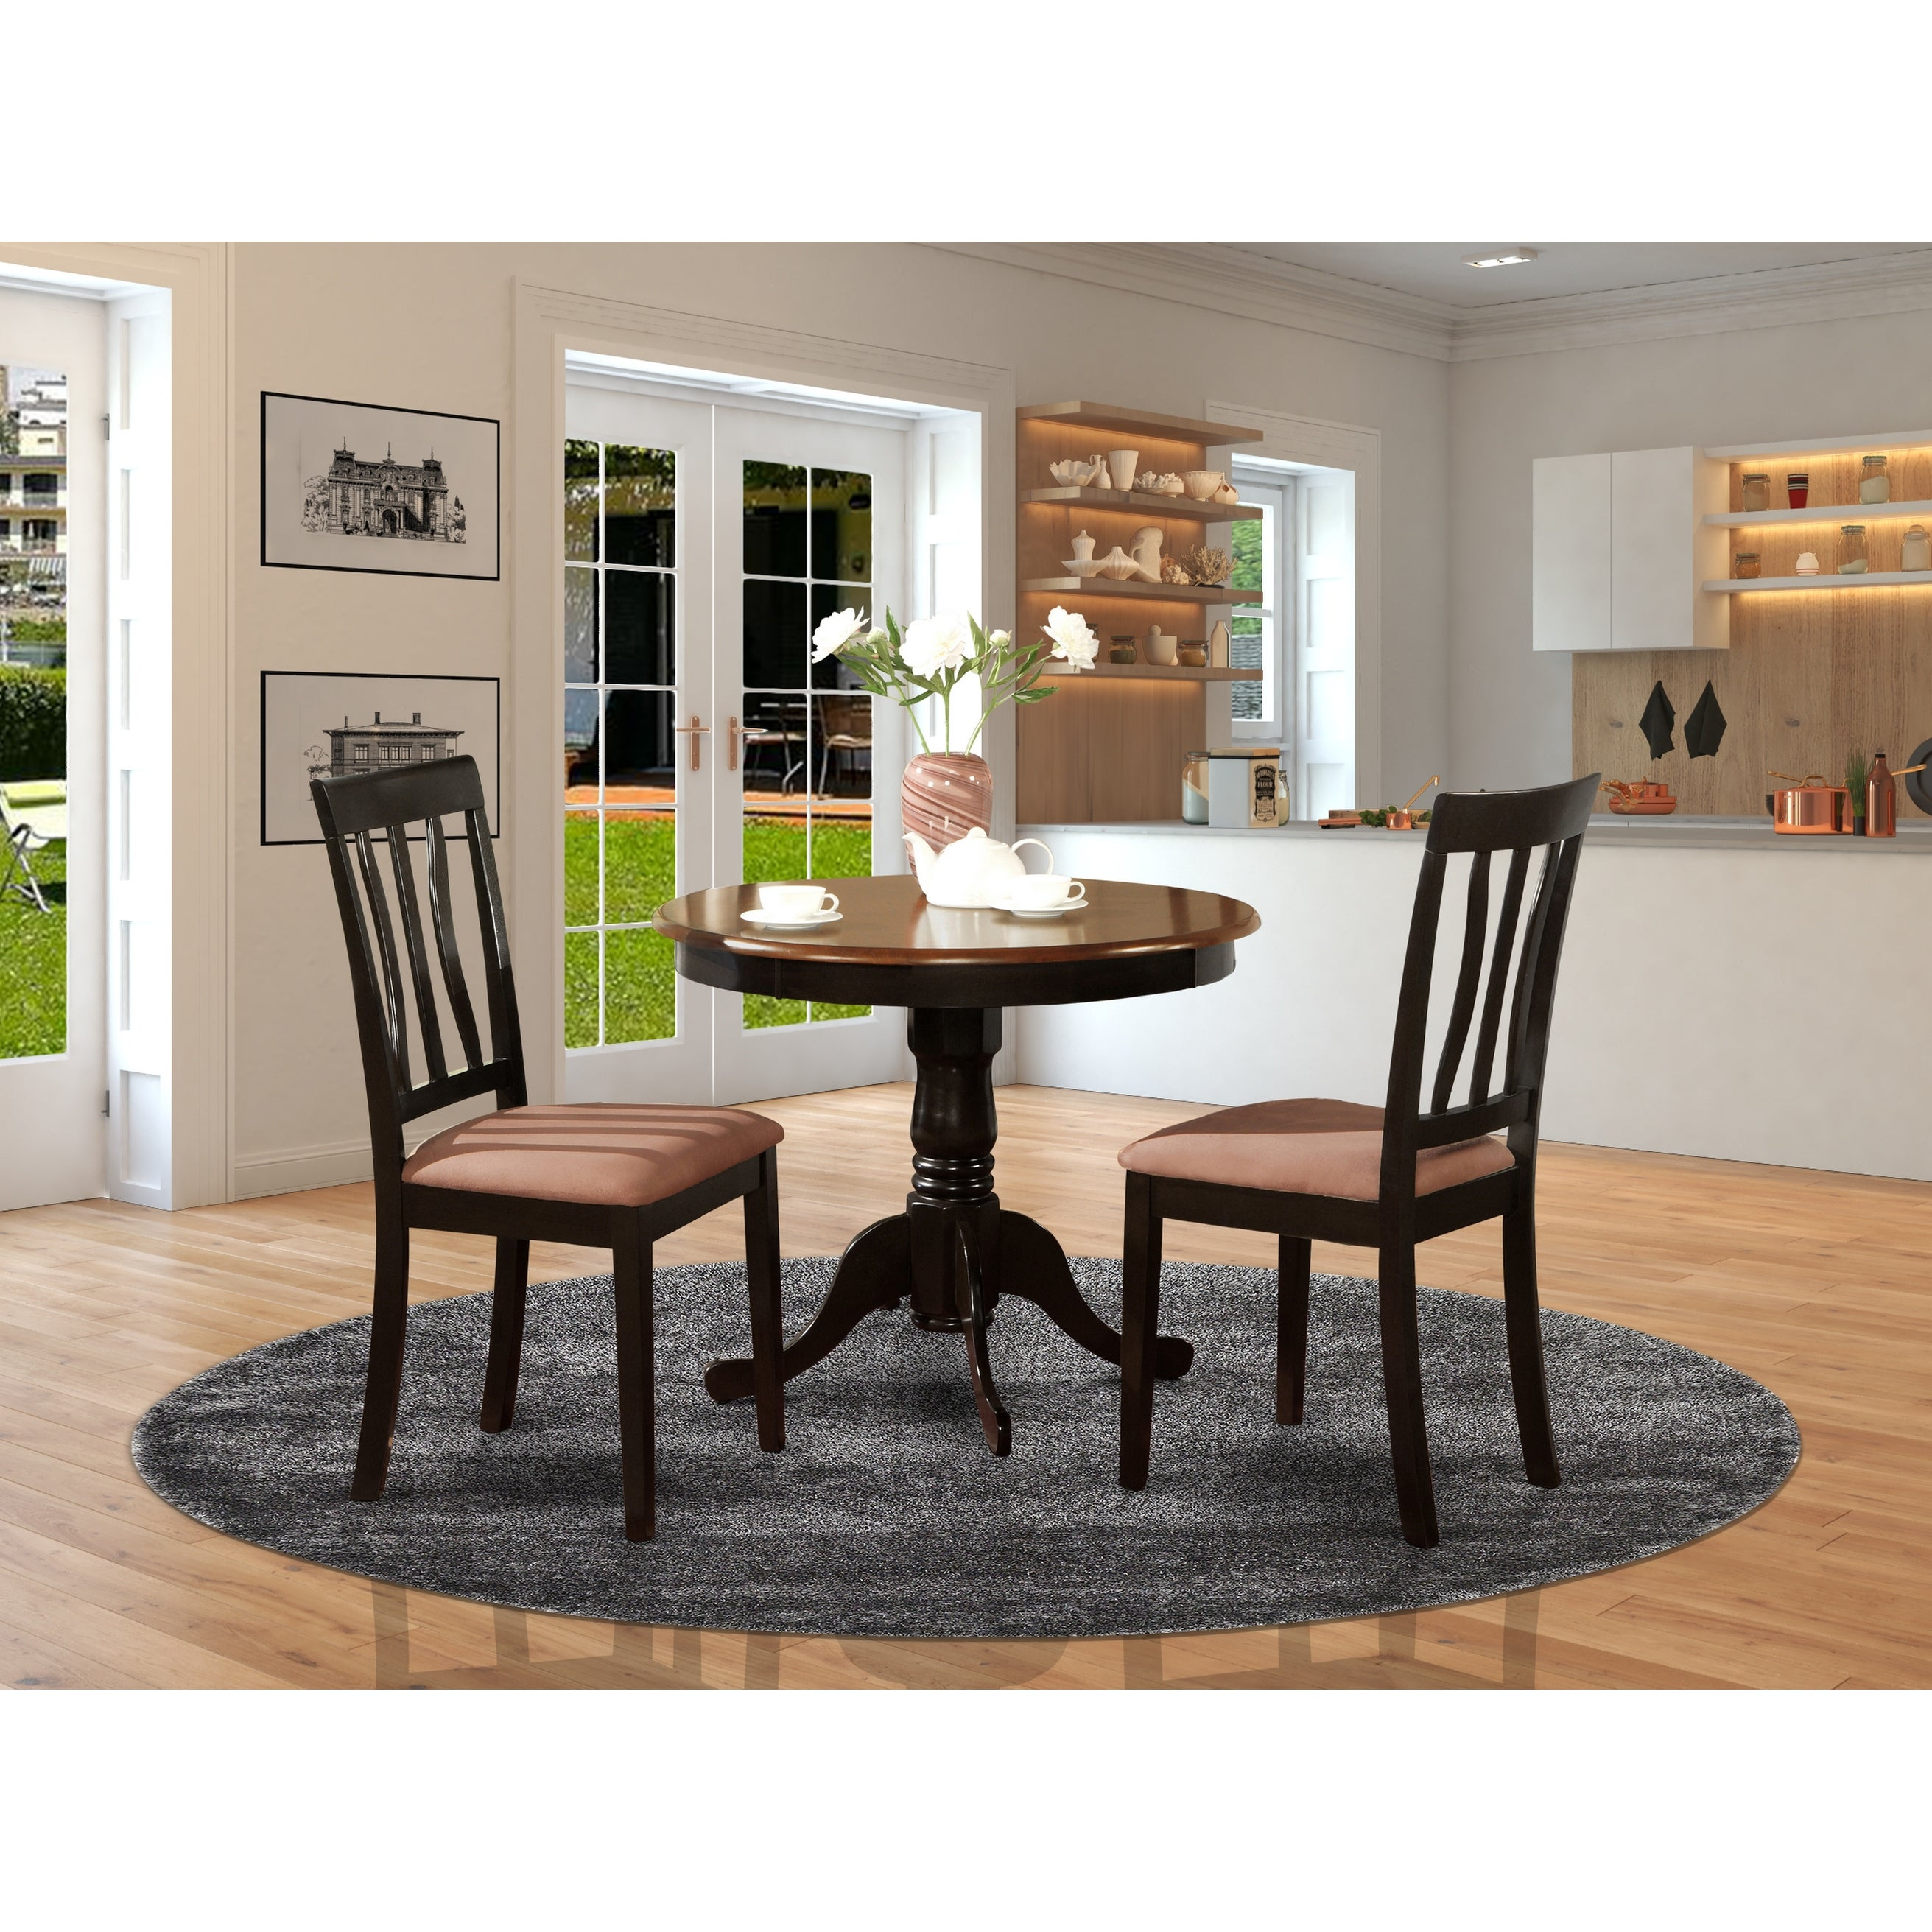 Black Round 3 Piece Dining Set Overstock 10201084